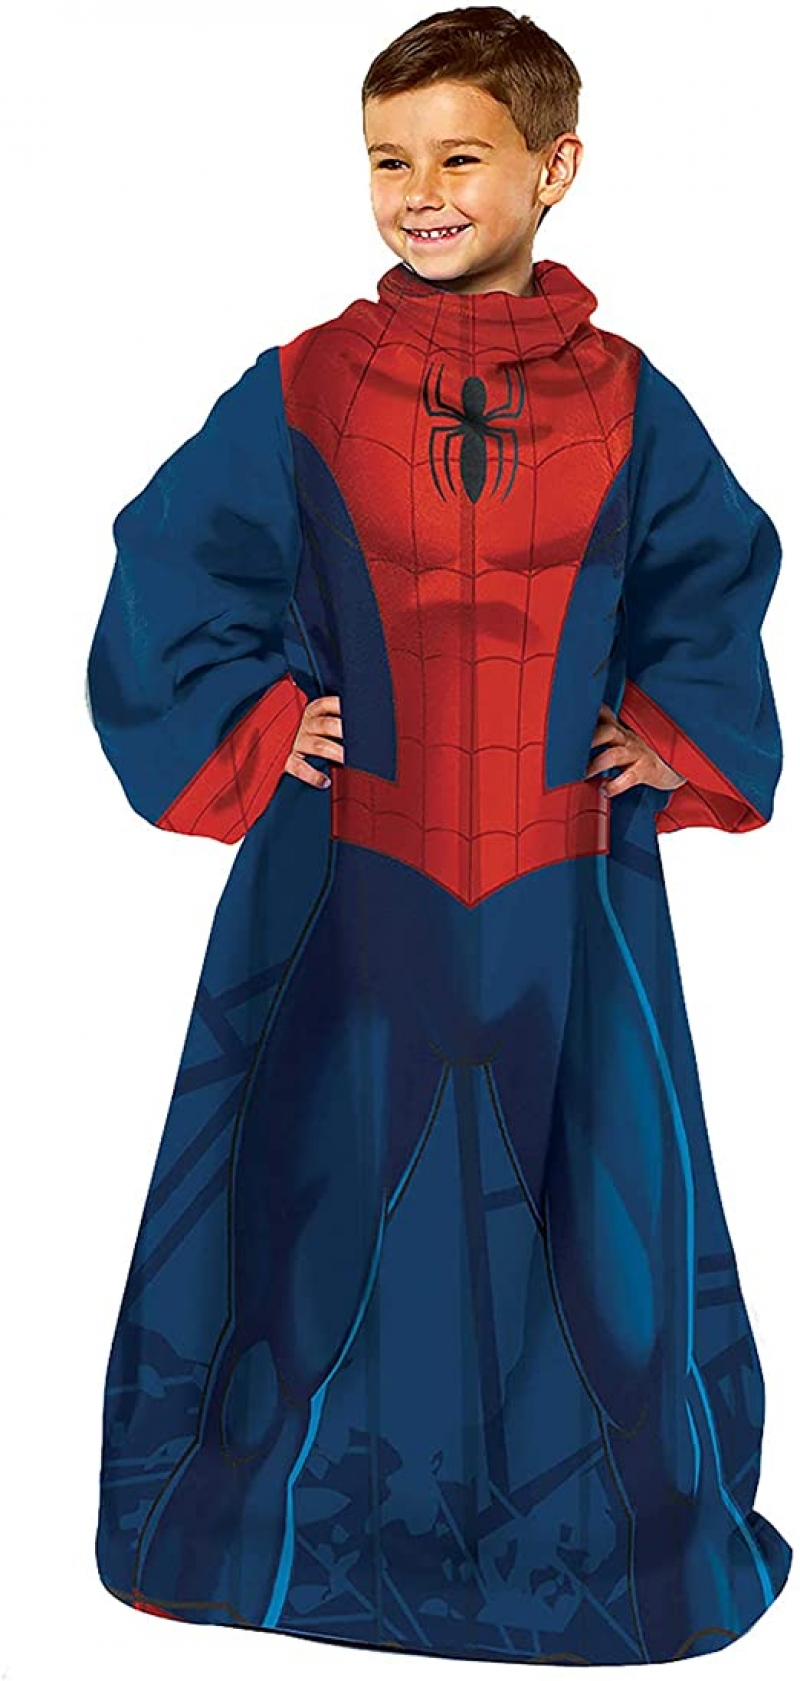 ihocon: Marvel Comfy Throw Blanket with Sleeves, Youth-48 x 48 Inches, Spider man 兒童蜘蛛俠有袖蓋毯